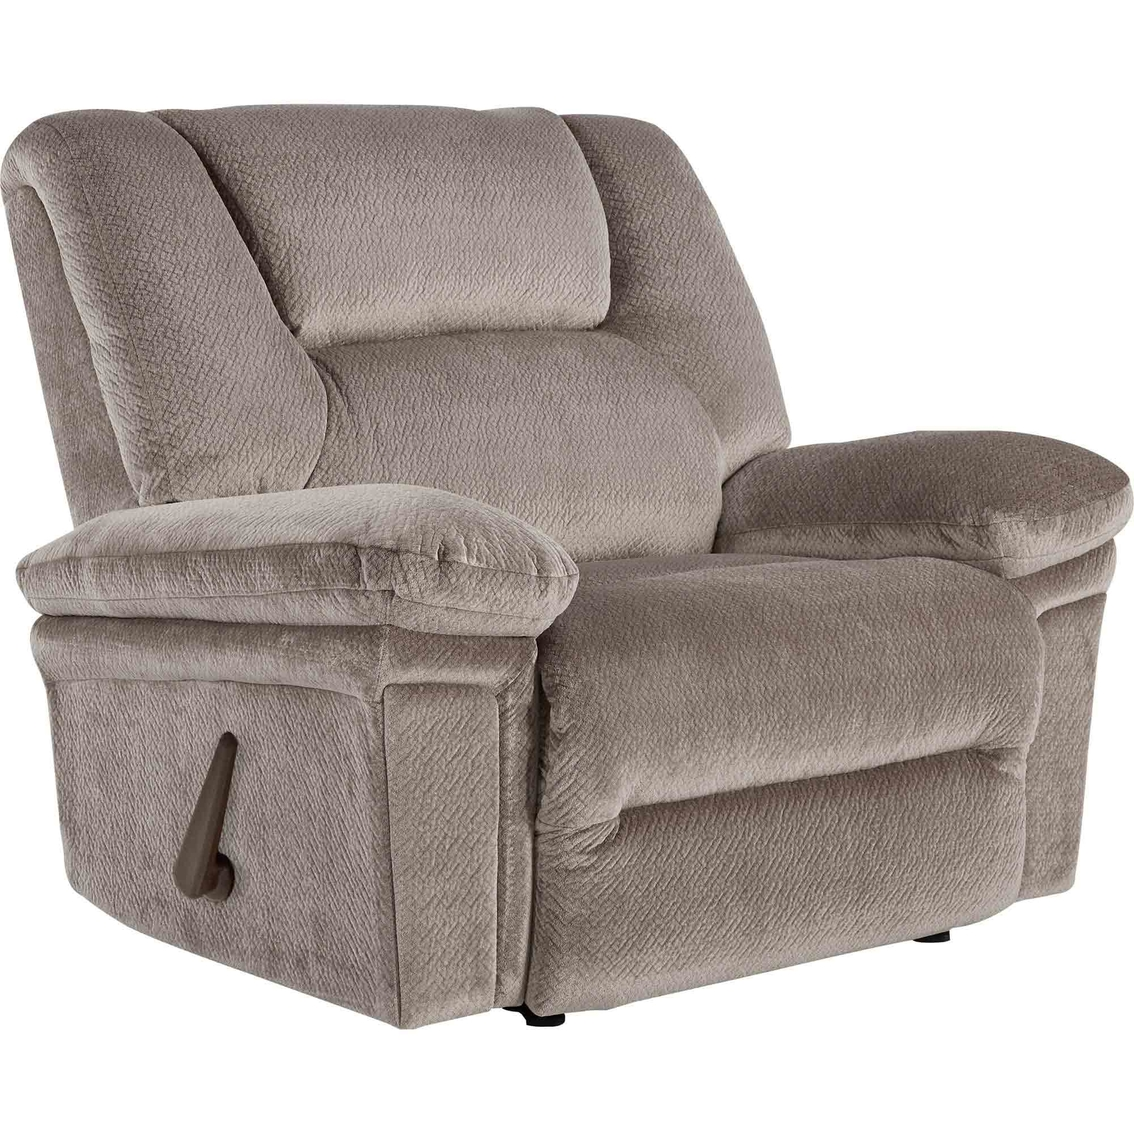 wall hugger recliner chair accent ottoman best home furnishings parker chairs